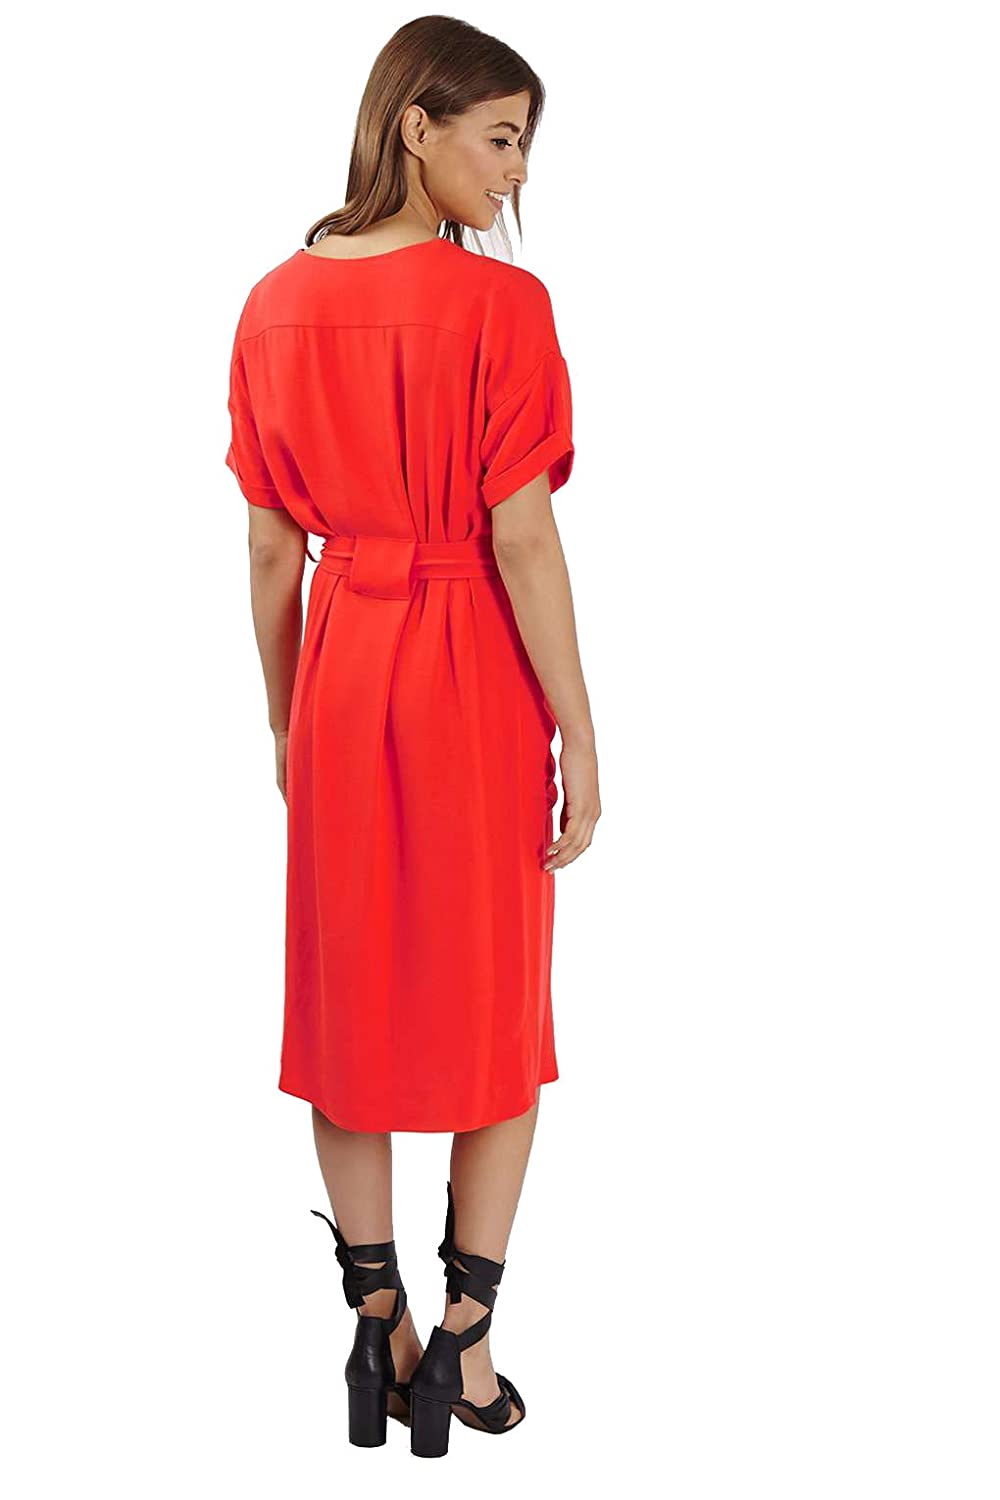 TOPSHOP Relaxed midi dress with self tie belt and front split detail and pockets size 8, 10, 12 (8): Amazon.co.uk: Clothing